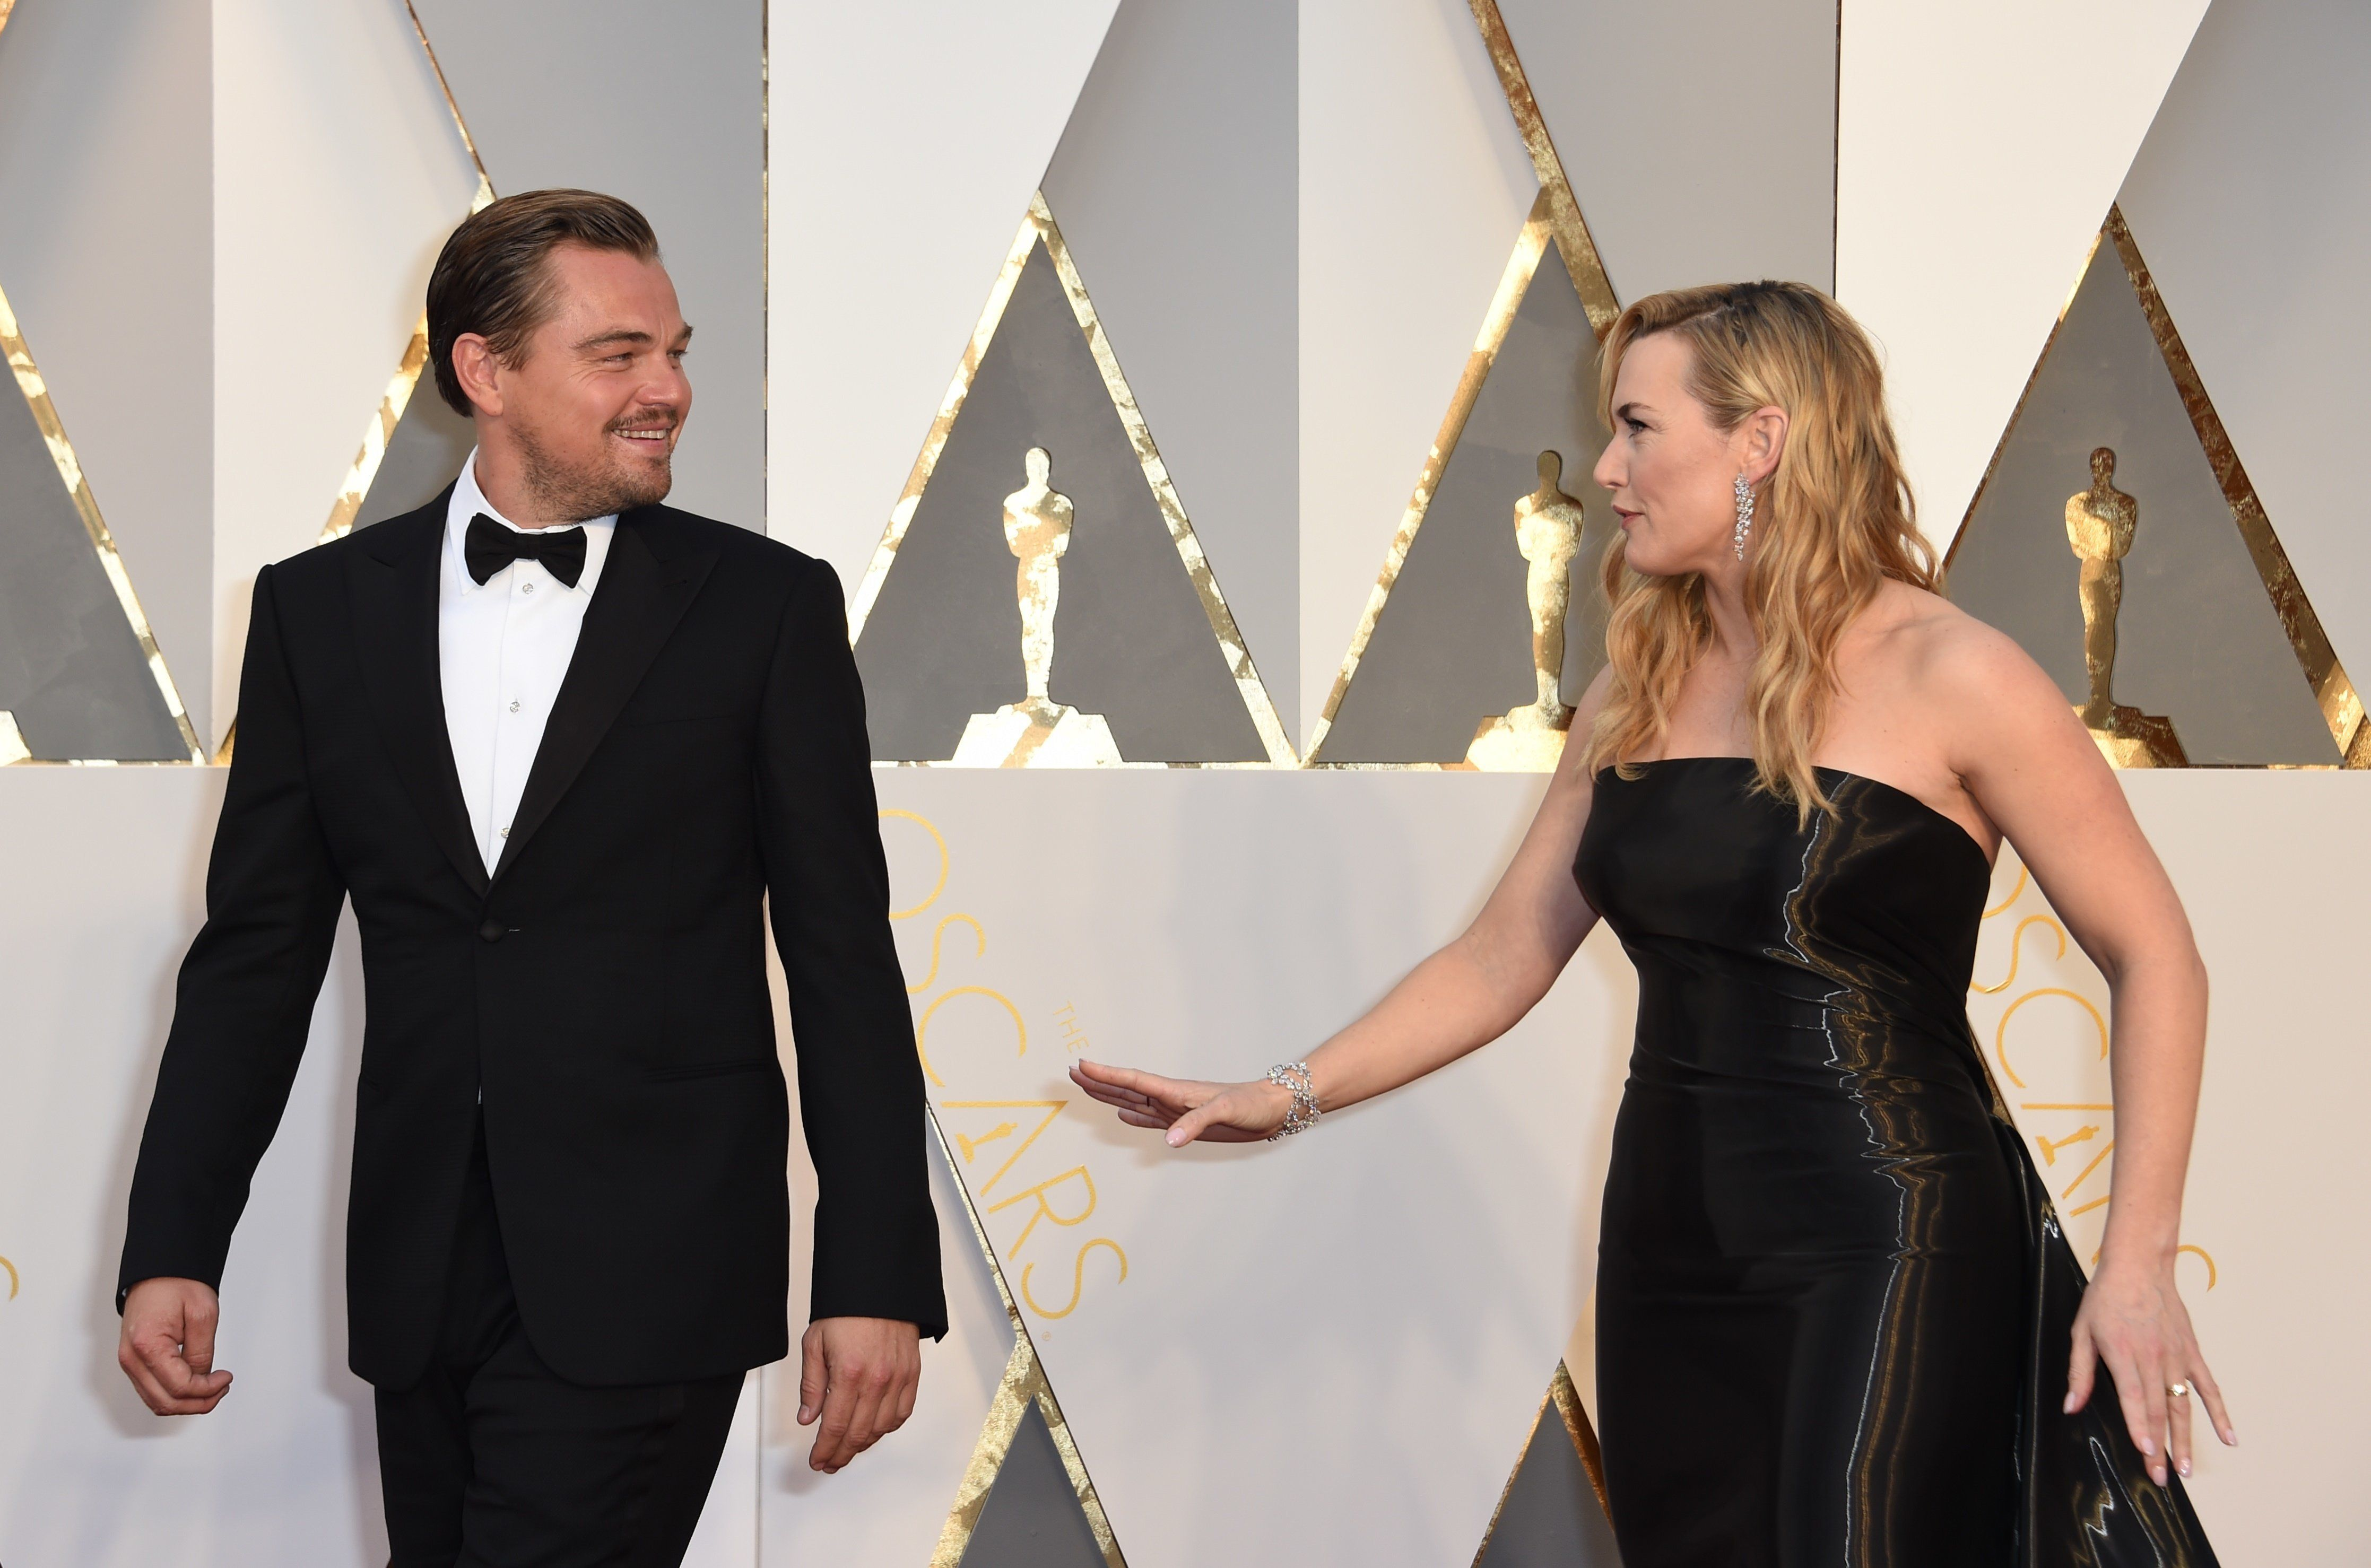 Actor Leonardo DiCaprio (L) and actress Kate Winslet arrive on the red carpet for the 88th Oscars on February 28, 2016 in Hollywood, California. AFP PHOTO / VALERIE MACON / AFP / VALERIE MACON        (Photo credit should read VALERIE MACON/AFP/Getty Images)